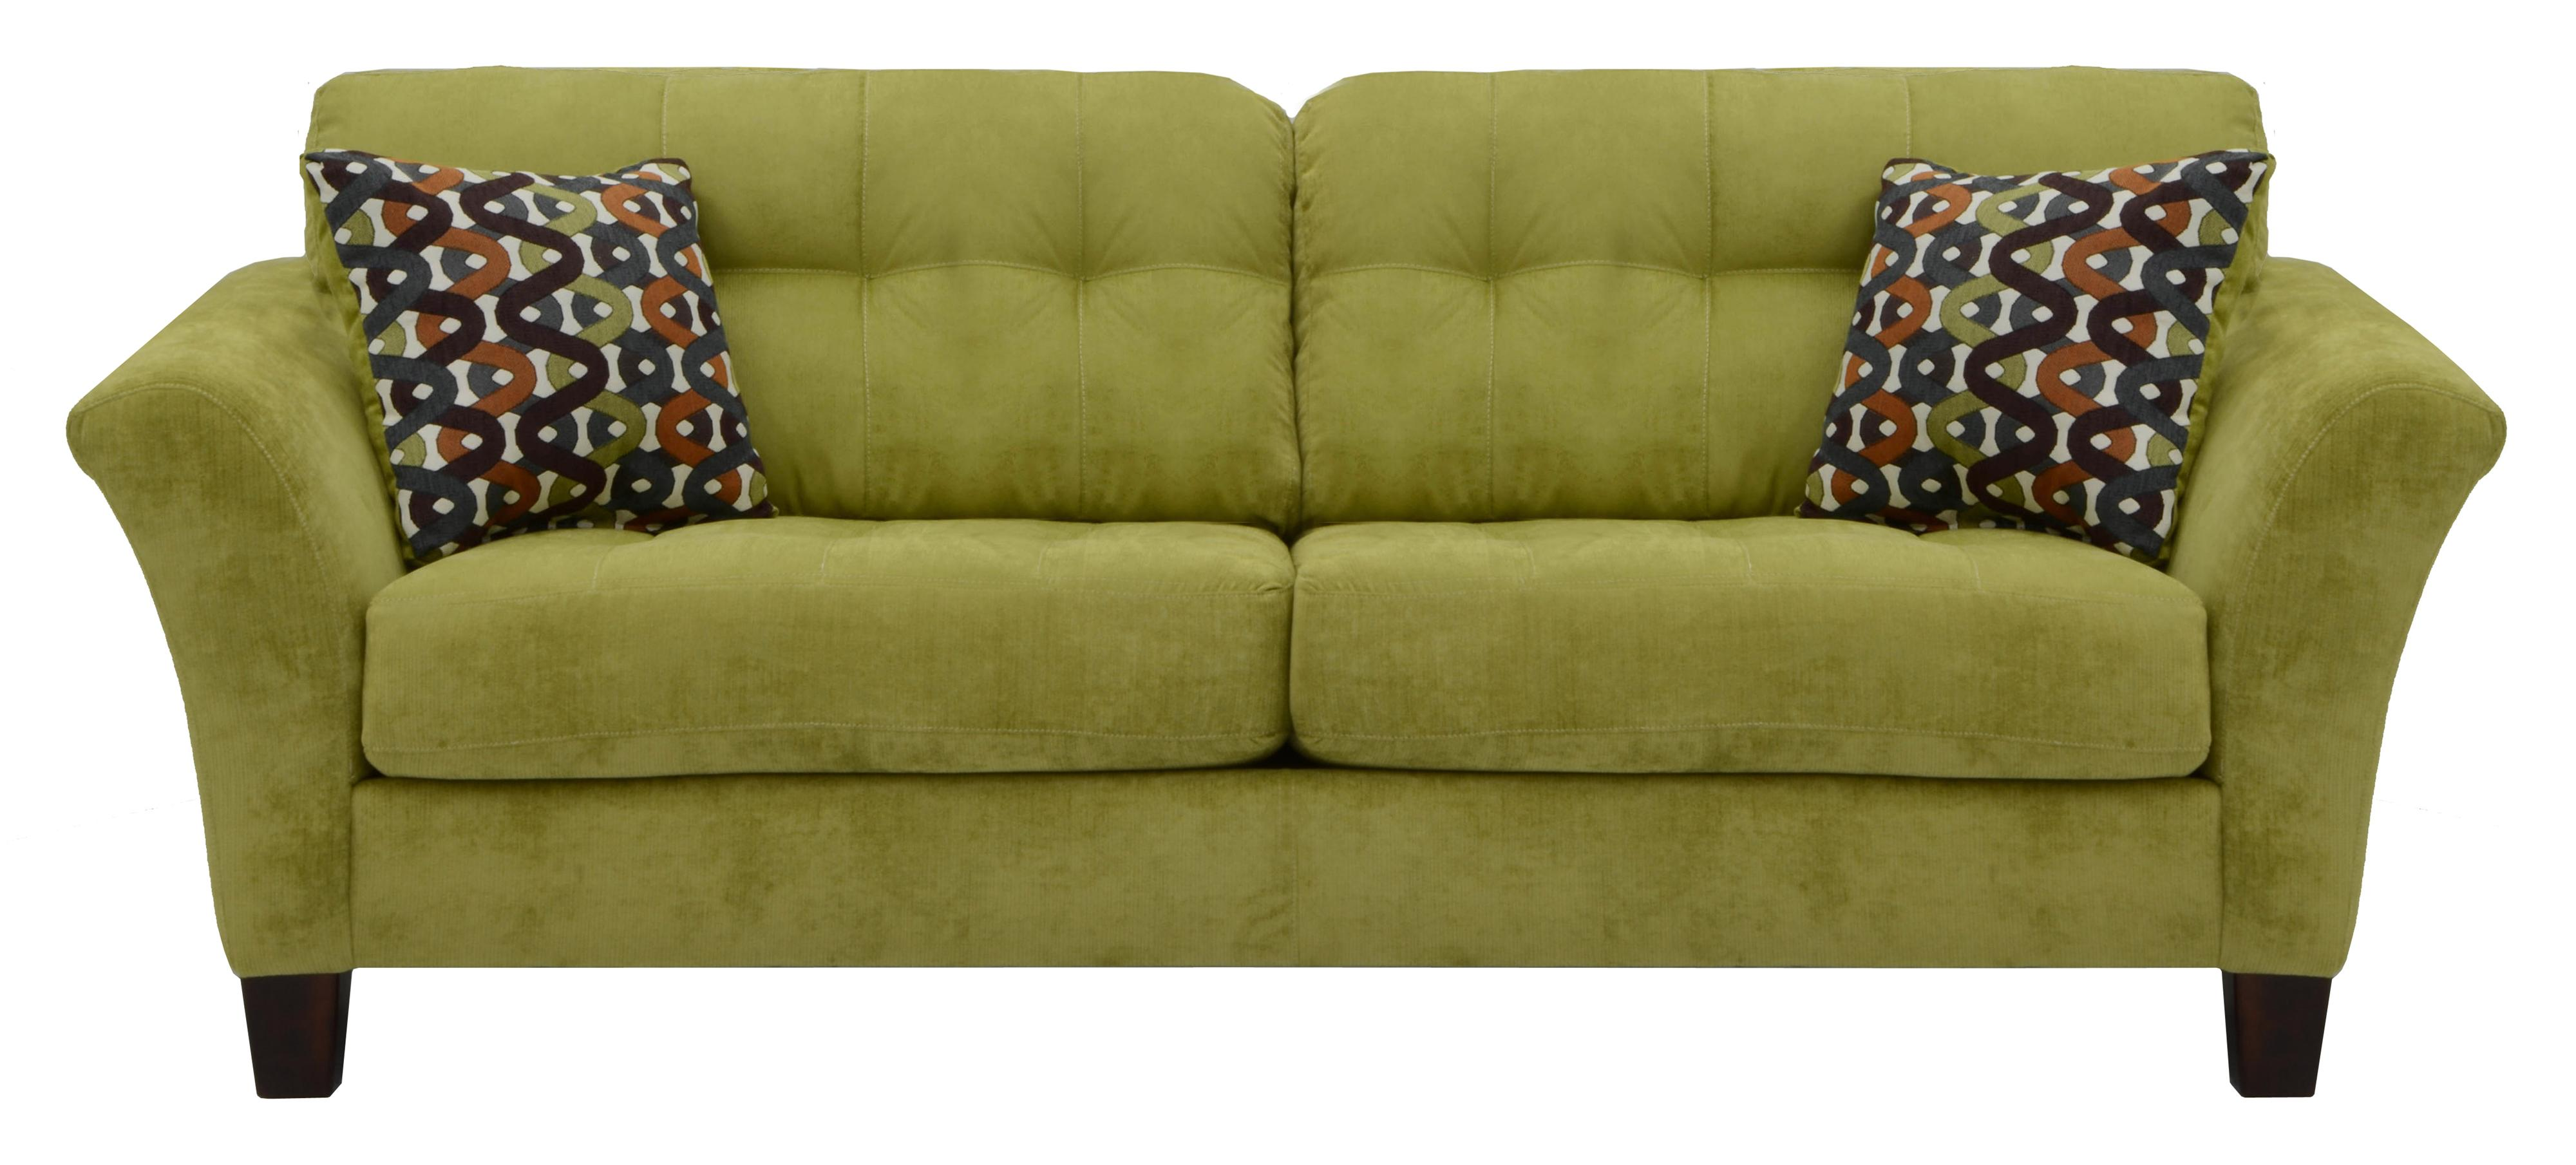 Jackson Furniture Halle 4381-03 Sofa With 2 Seats And